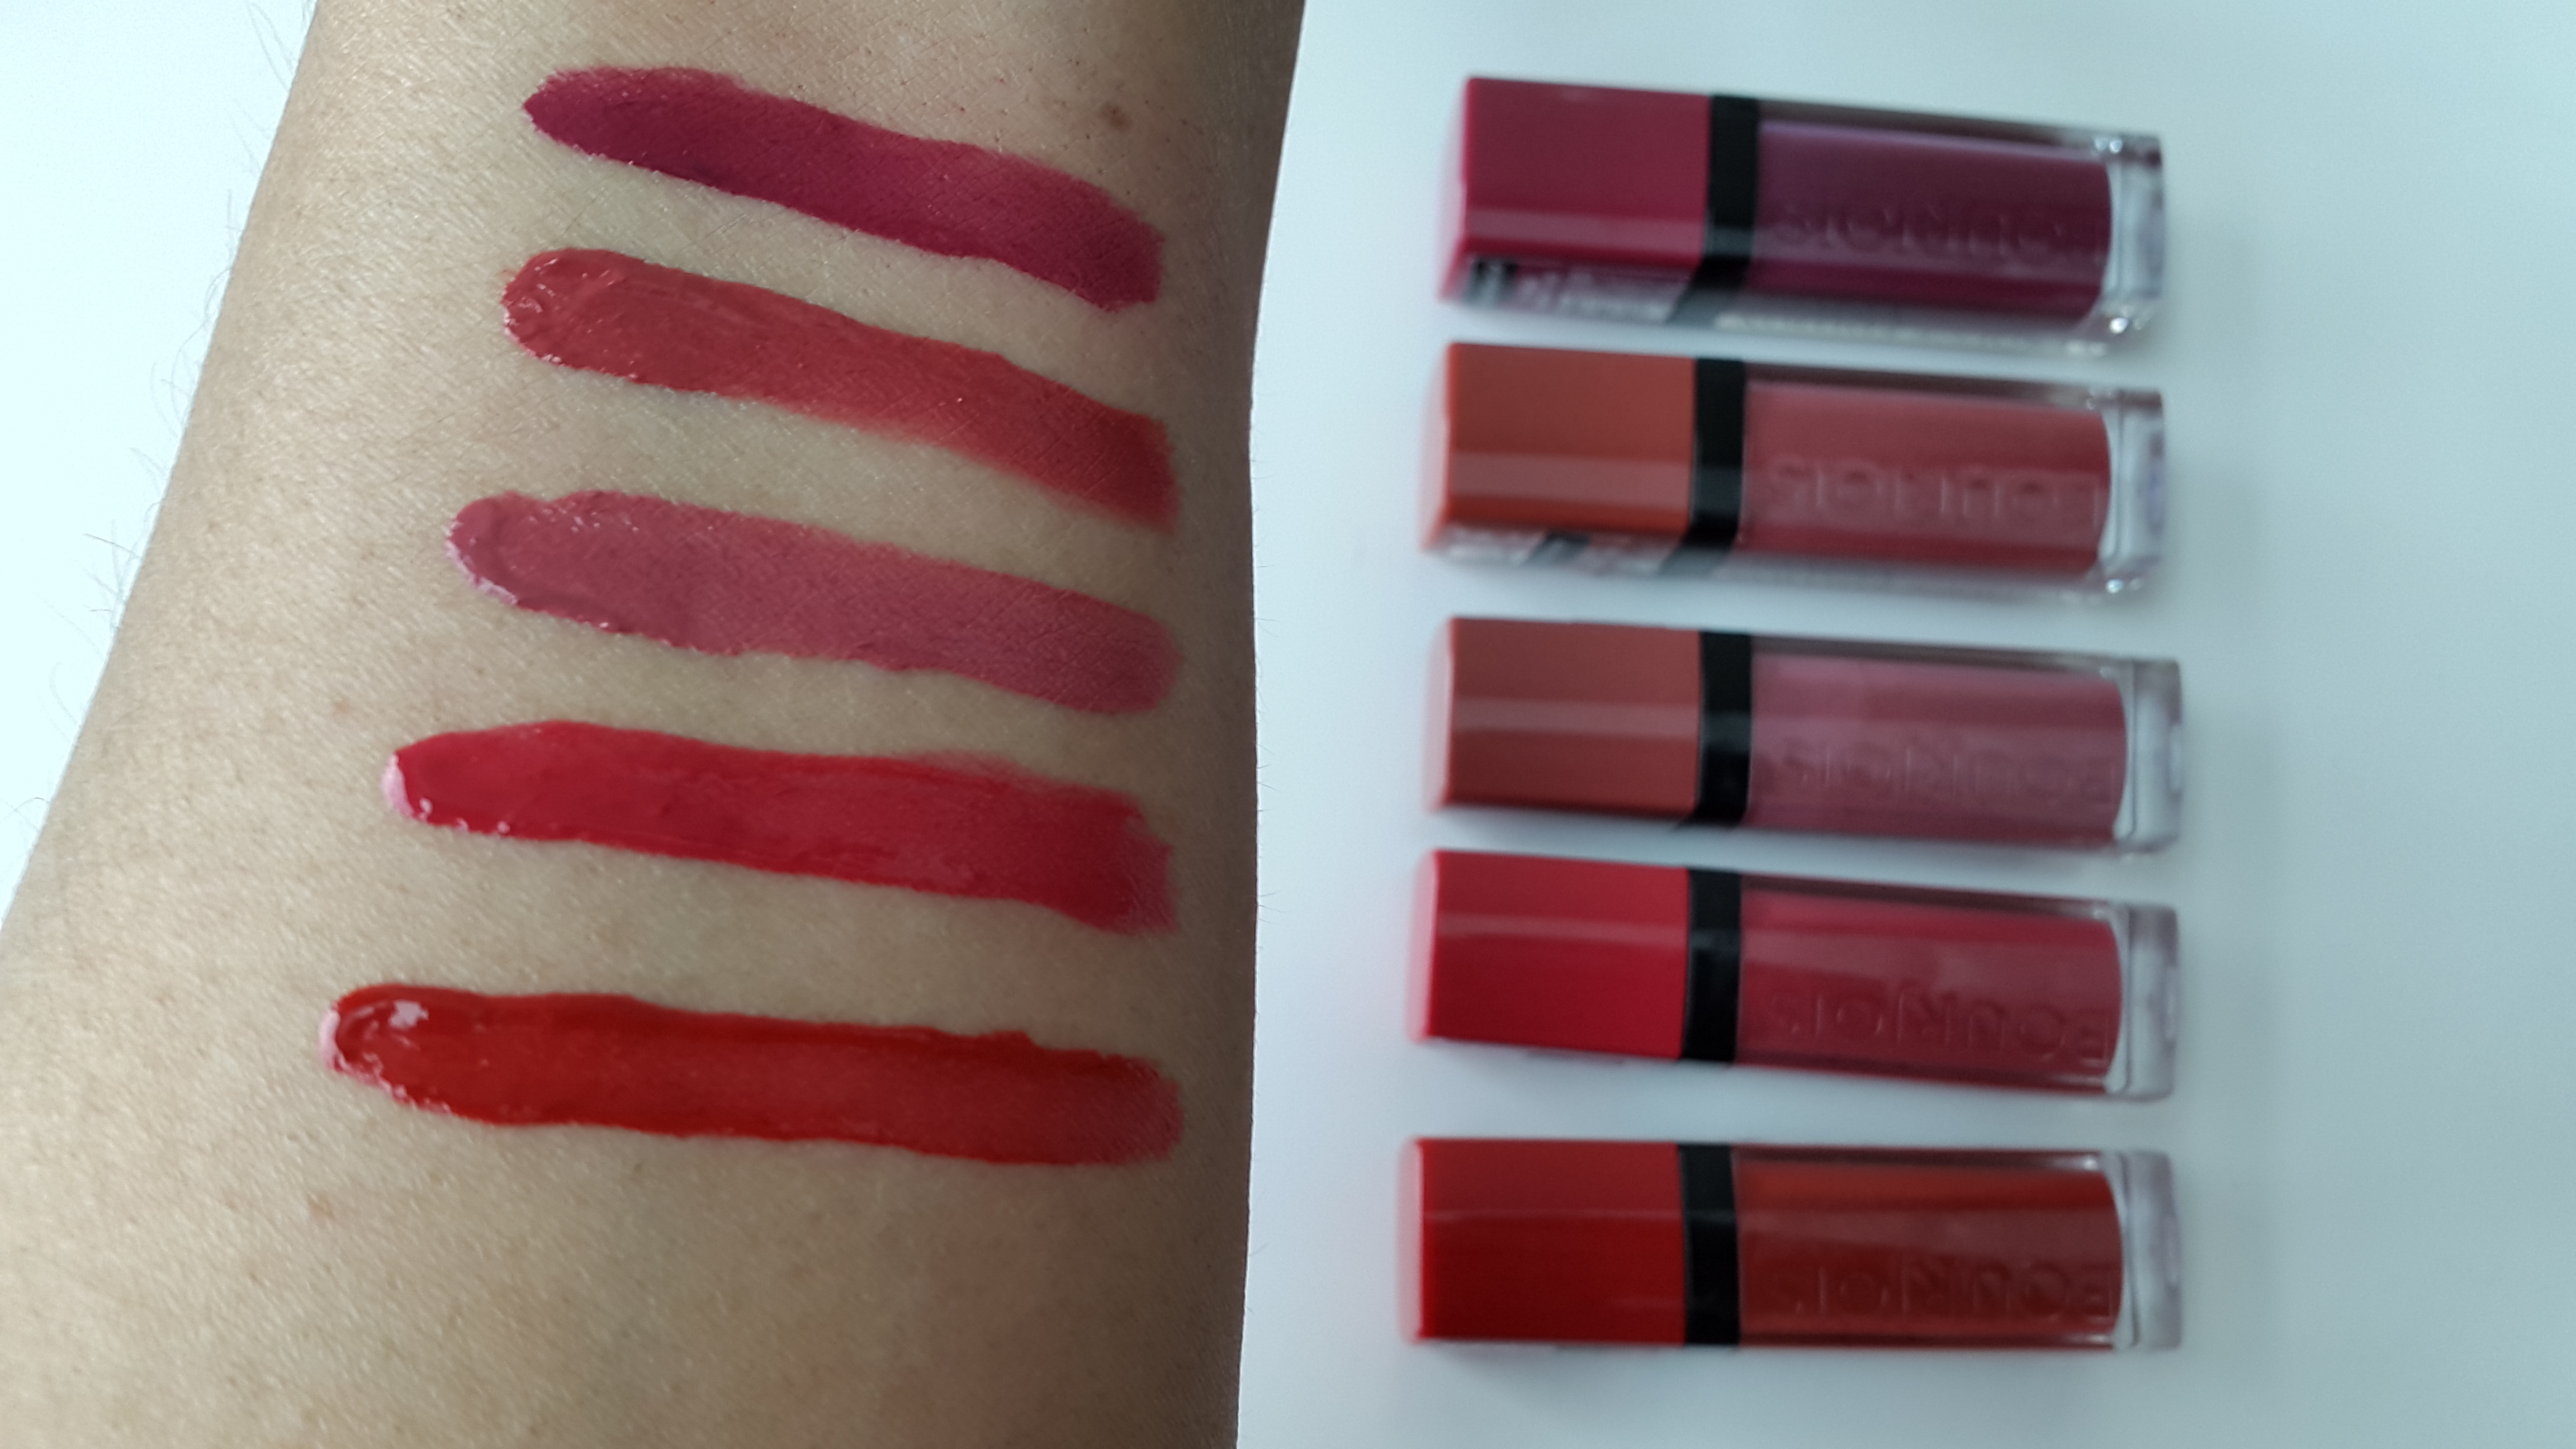 bourjois rouge edition 12 hours lipstick review